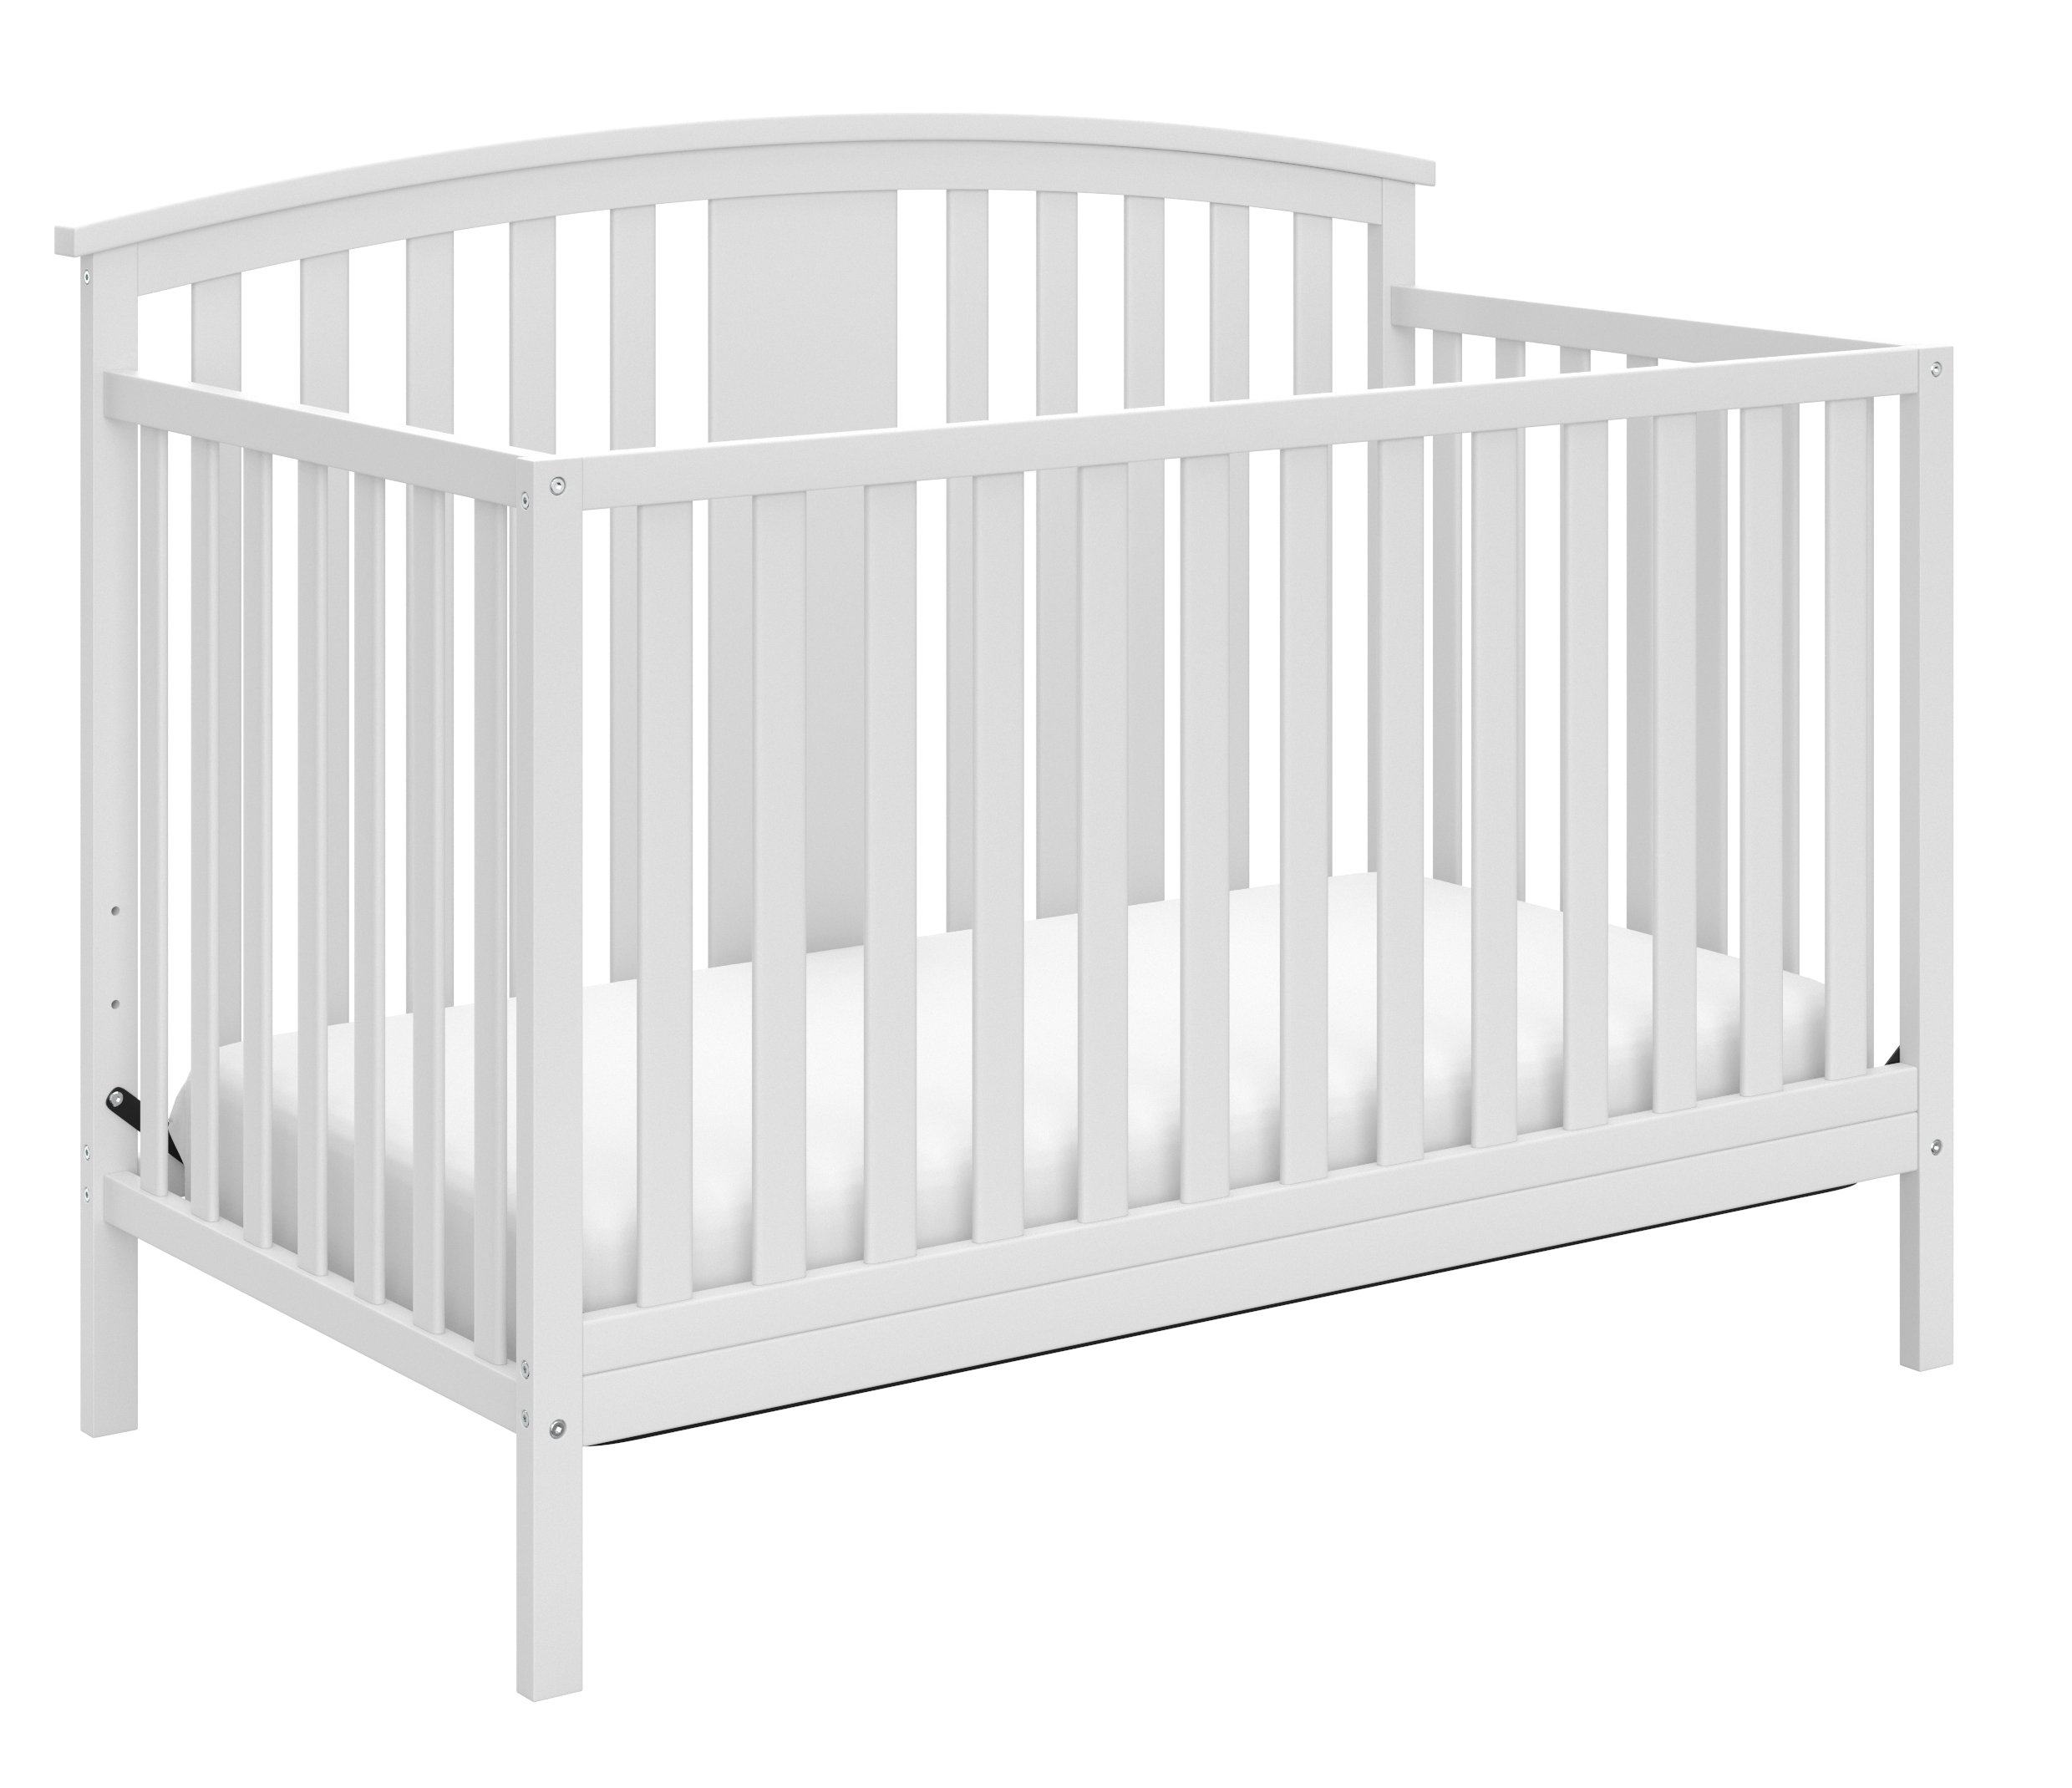 Storkcraft Greyson 4-in-1 Convertible Crib, White Easily Converts to Toddler Bed, Day Bed or Full Bed, 3 Position Adjustable Height Mattress